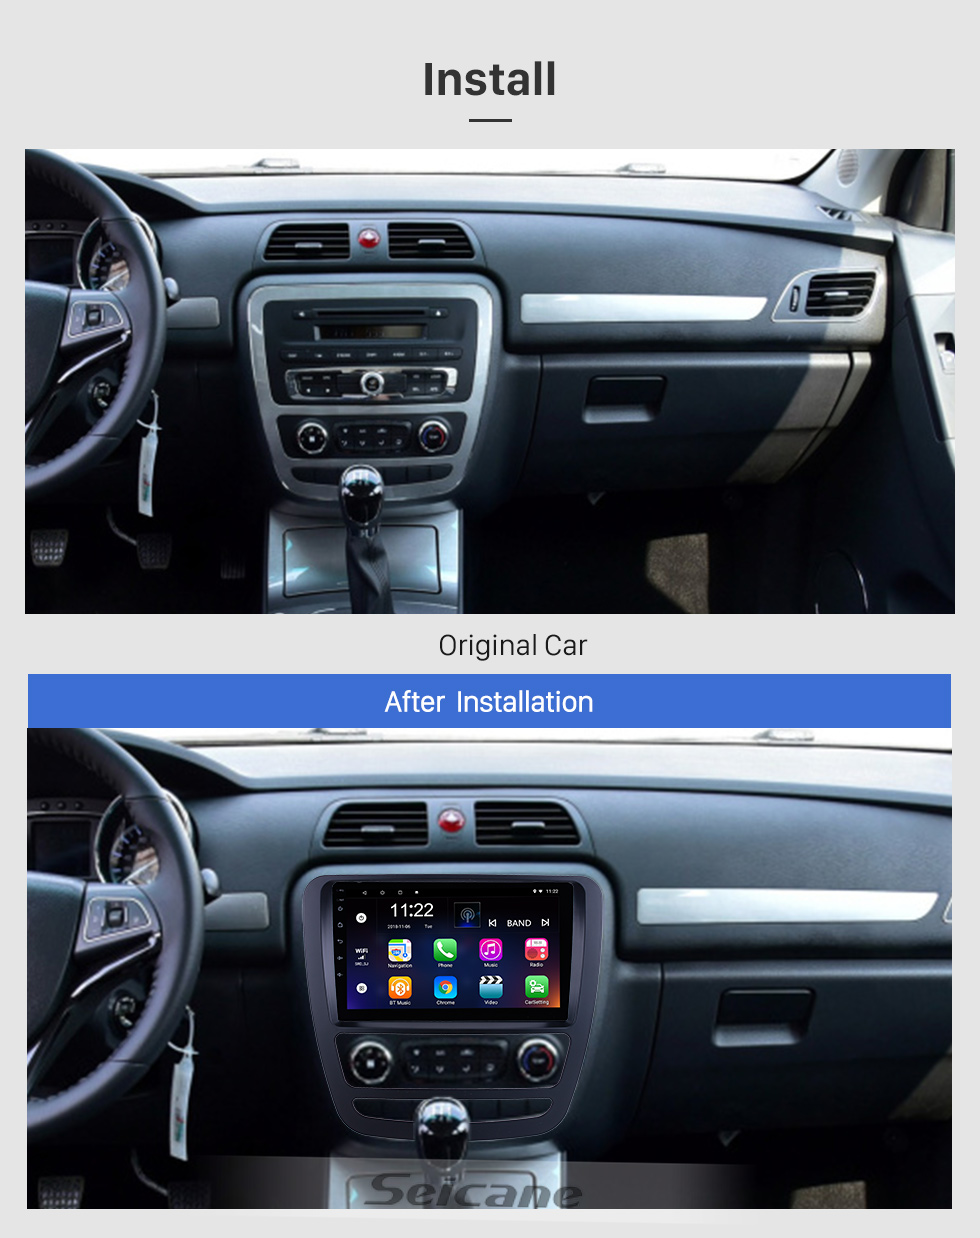 Seicane Für 2018 JAC Shuailing T6 / T8 Radio 9 Zoll Android 10.0 HD Touchscreen GPS-Navigationssystem mit Bluetooth-Unterstützung Carplay OBD2